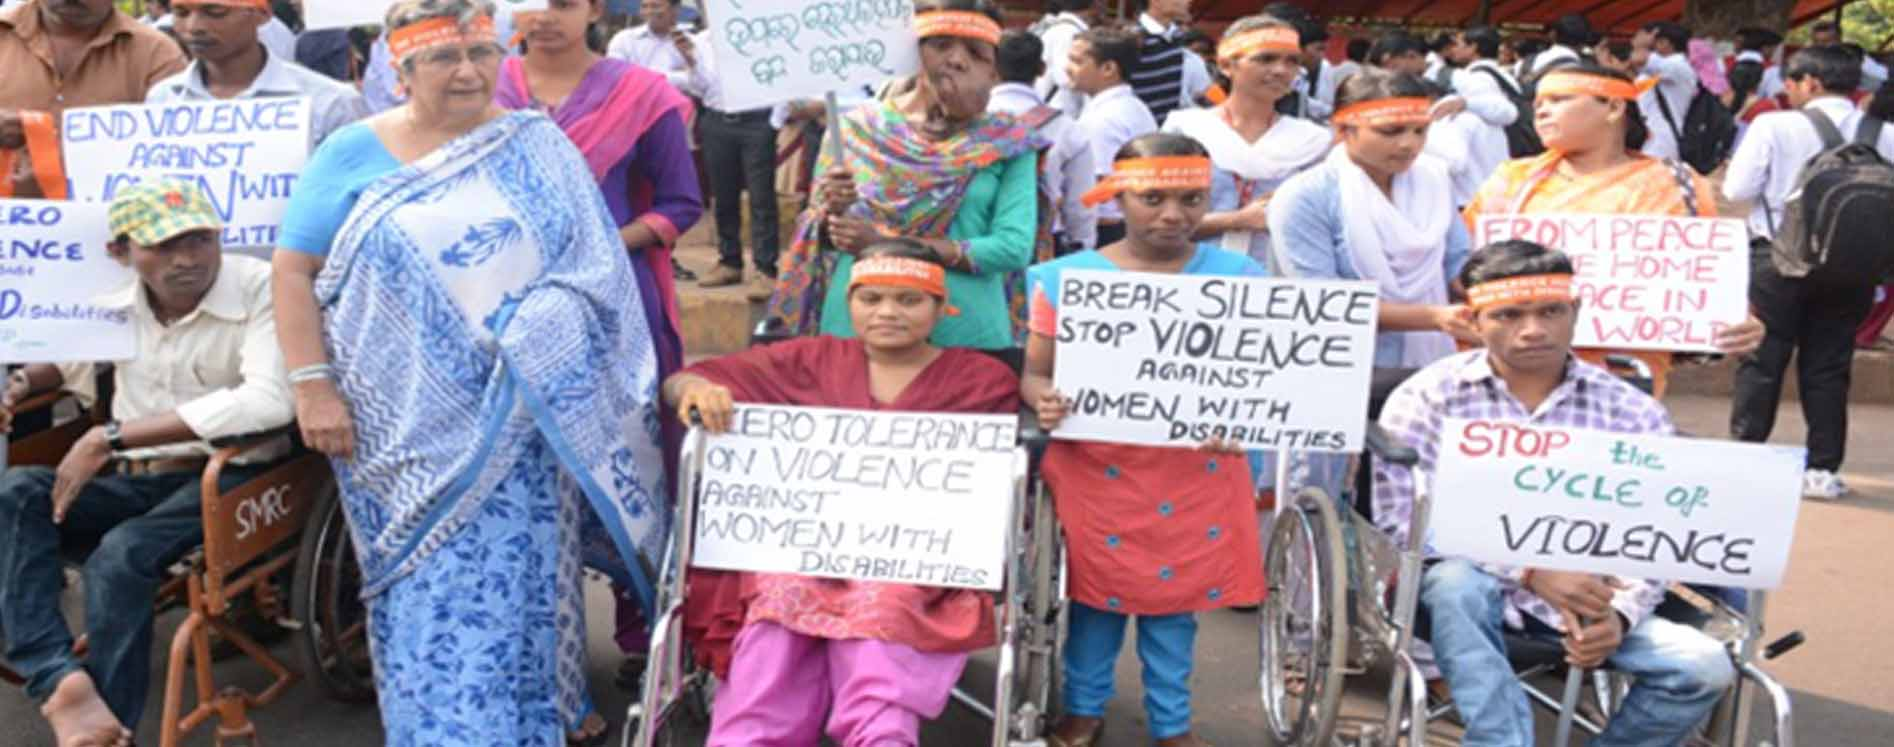 Rally to stop Violence during the 16 Days campaign